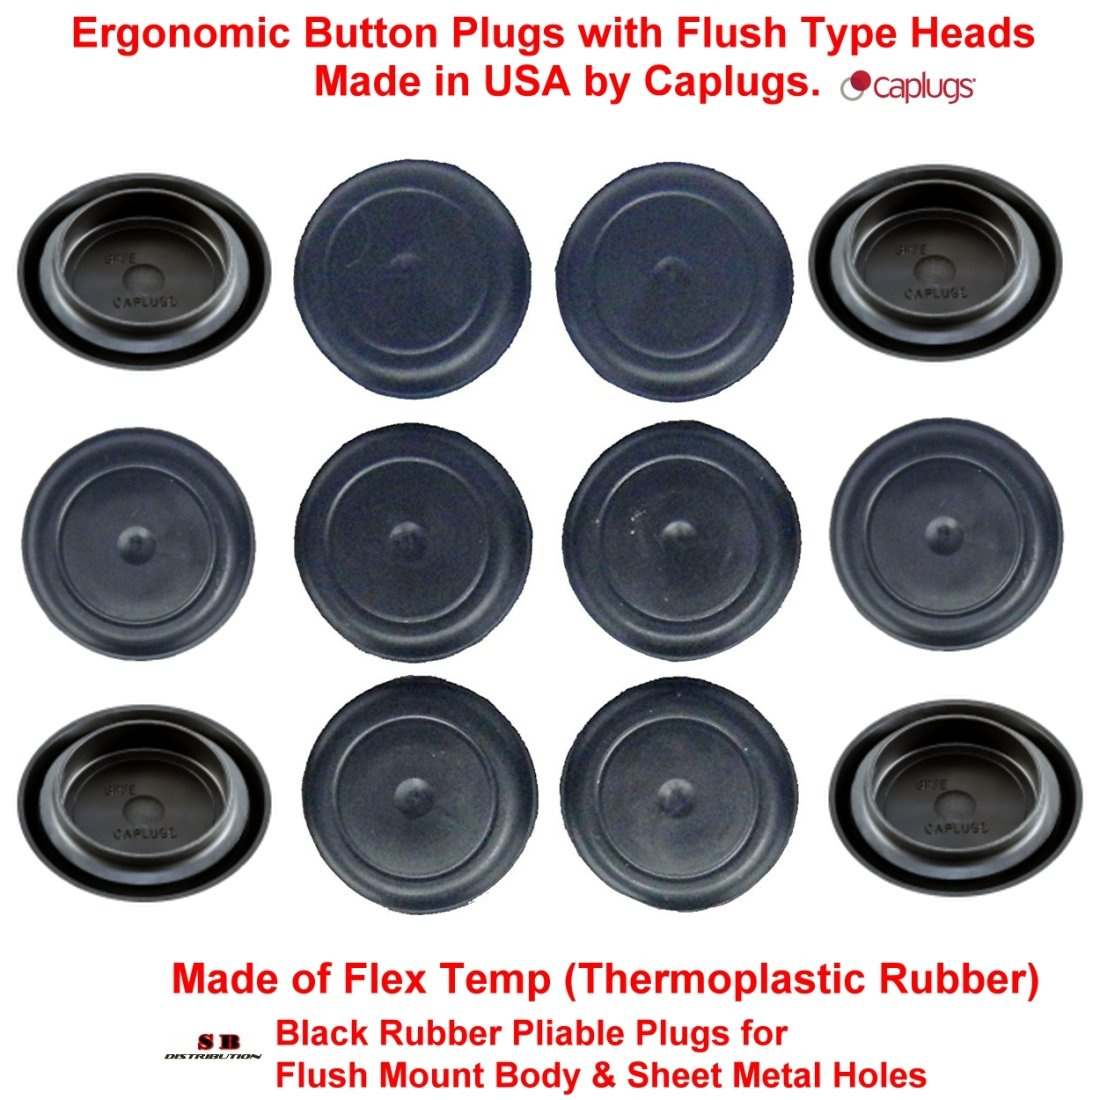 (Pack of 500) 1'' - (1.00 inch) Black Rubber Plugs | for Flush Mount Body and Sheet Metal Holes. Ergonomic Button Plugs with Flush-Type Heads | Made in USA by CAPLUGS | Fits 1'' hole diameter